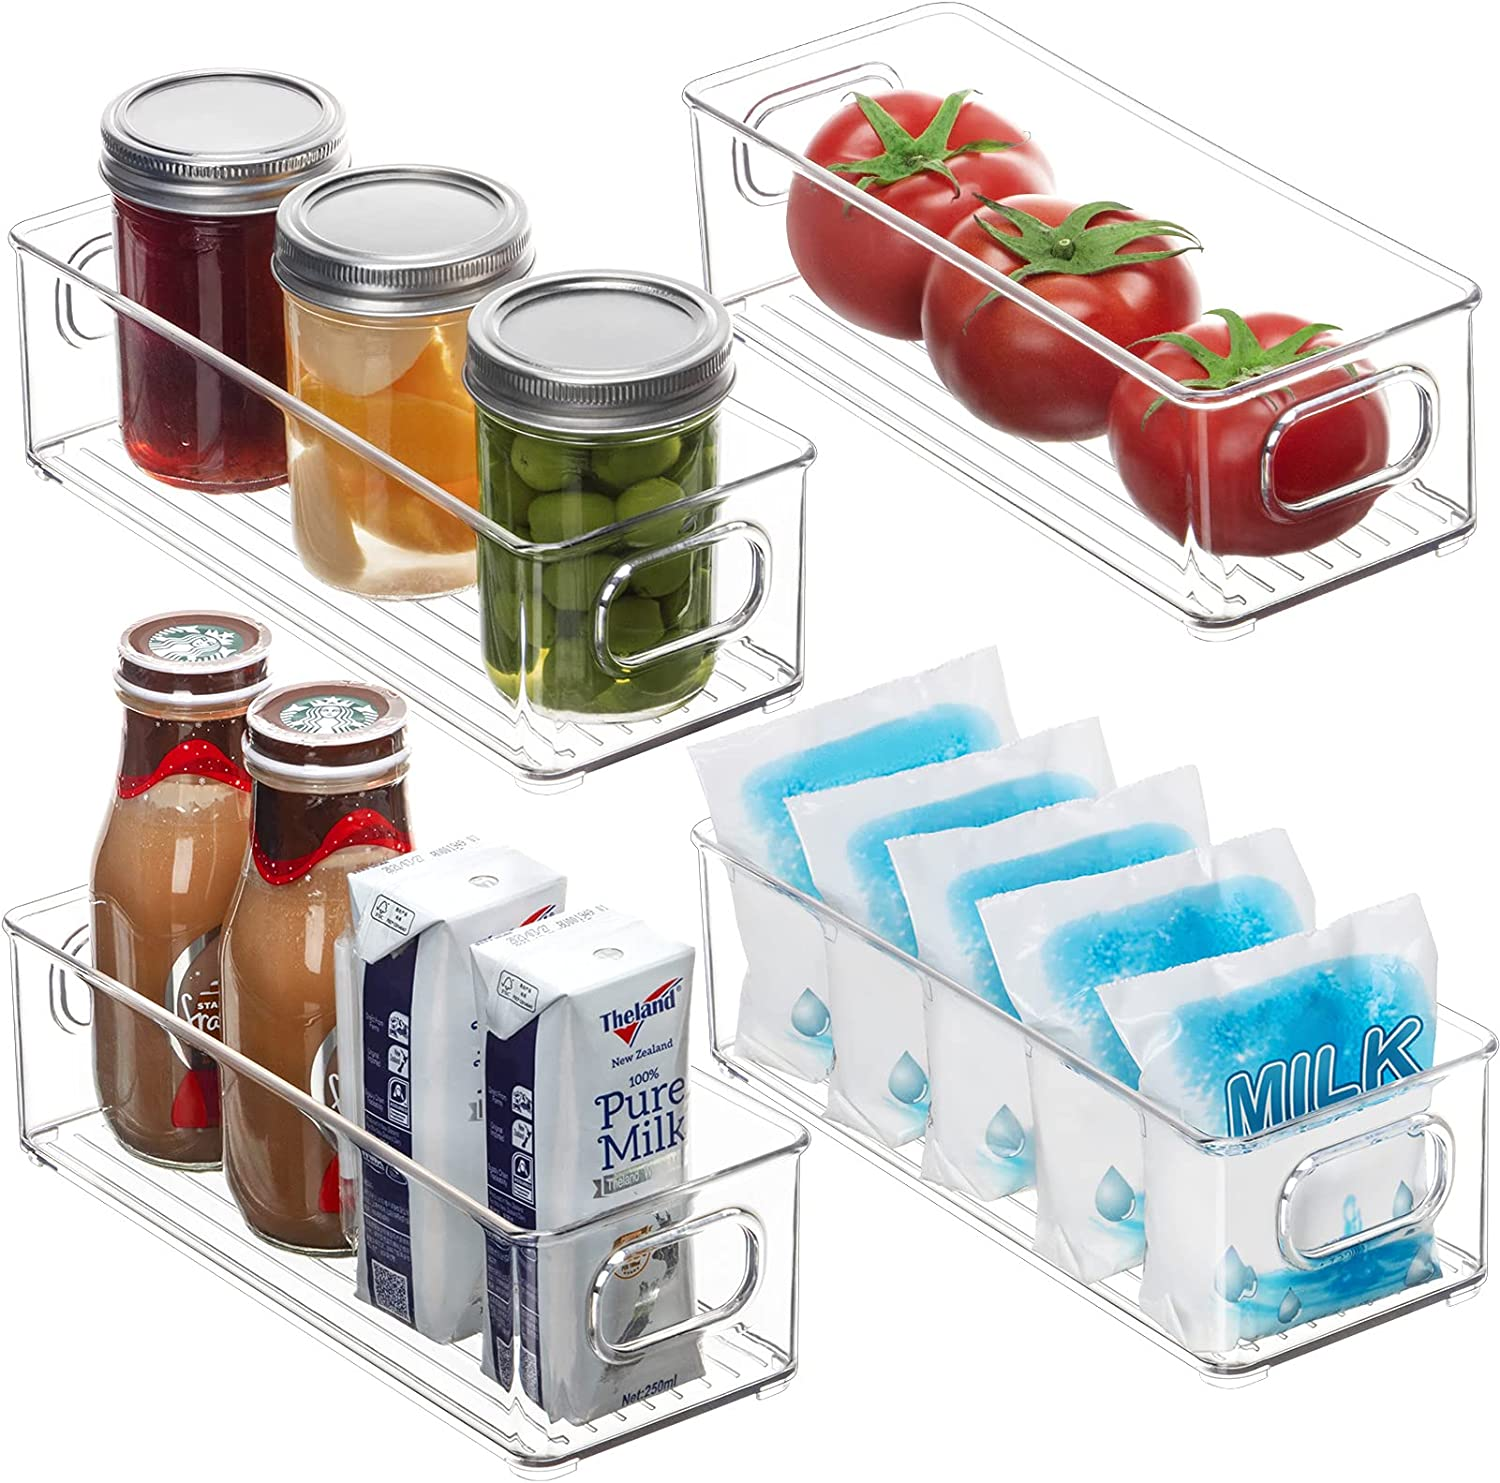 4 Pack Refrigerator Organizer Bins - BPA-Free Stackable Plastic Clear Storage Bins with Handles, Freezer Food Storage Containers for Fridge, Cabinet, Kitchen, Bathroom, Pantry Organization and Storage